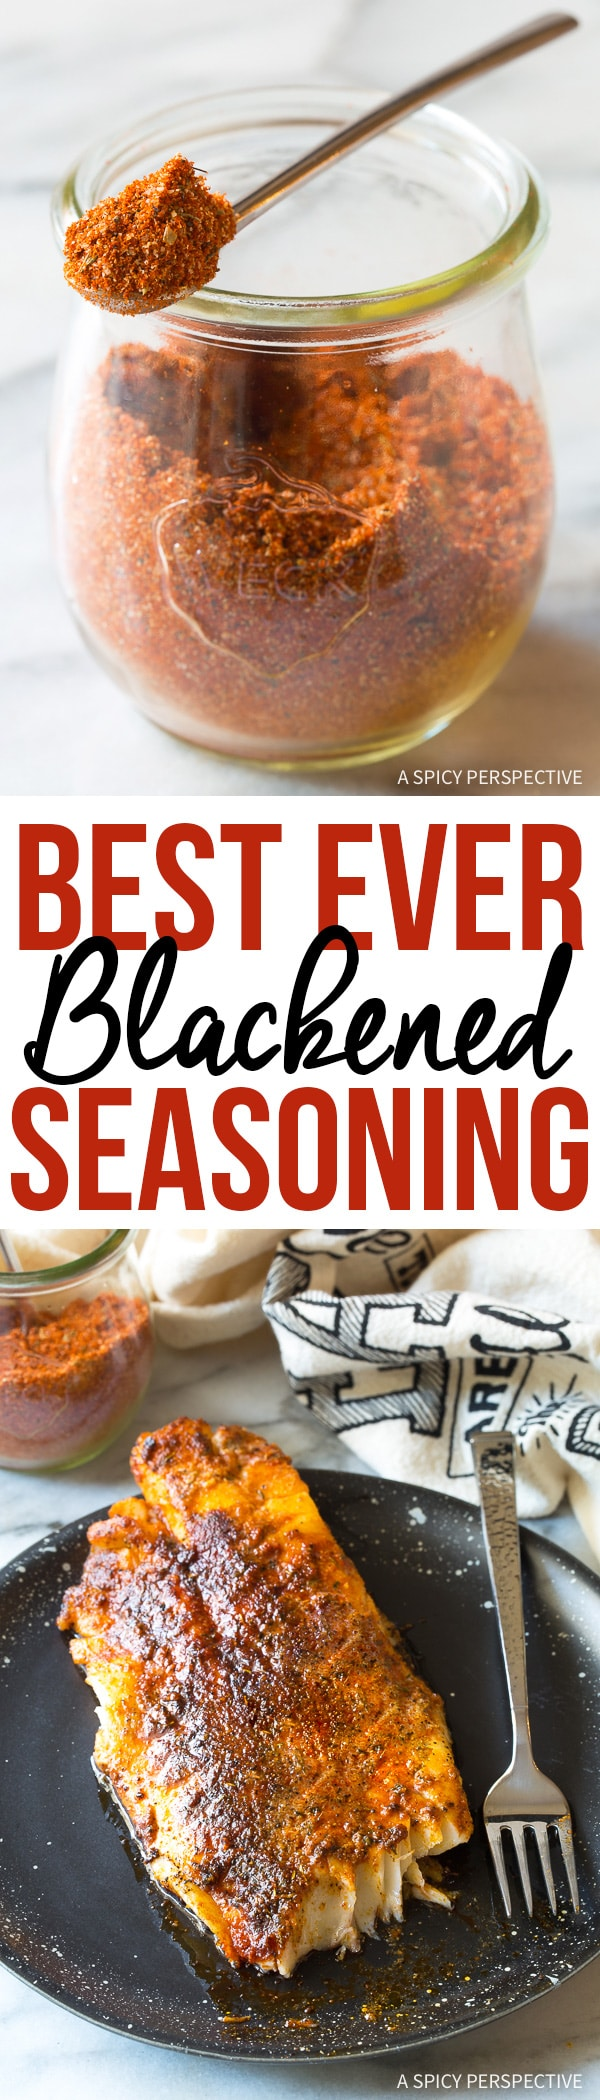 Best Ever Blackened Seasoning A Spicy Perspective